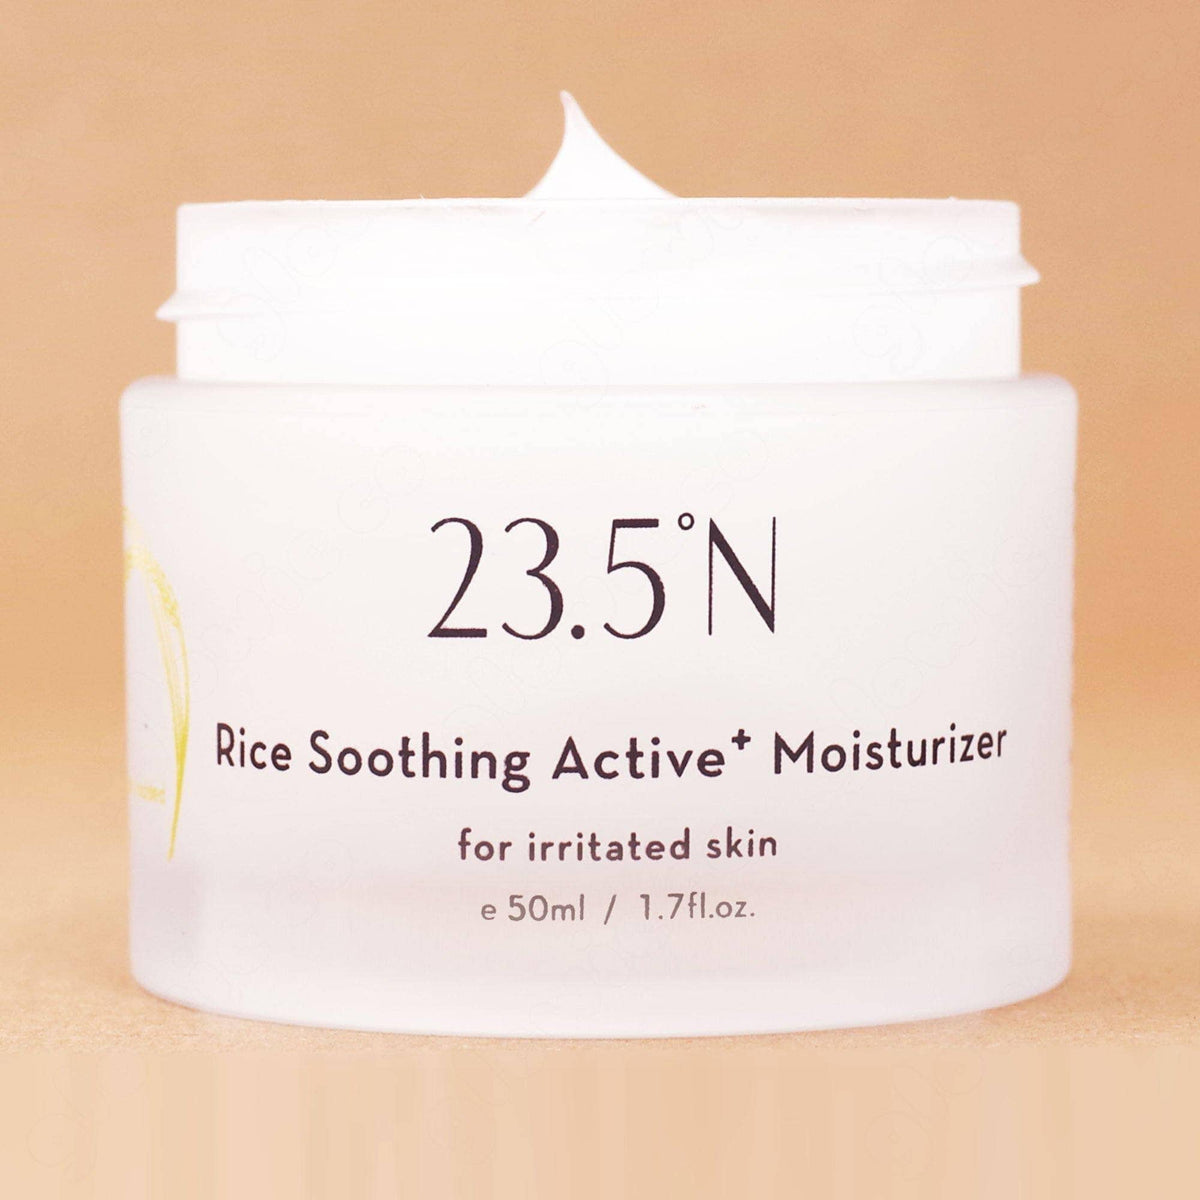 23.5°N Rice Soothing Active+ Moisturizer